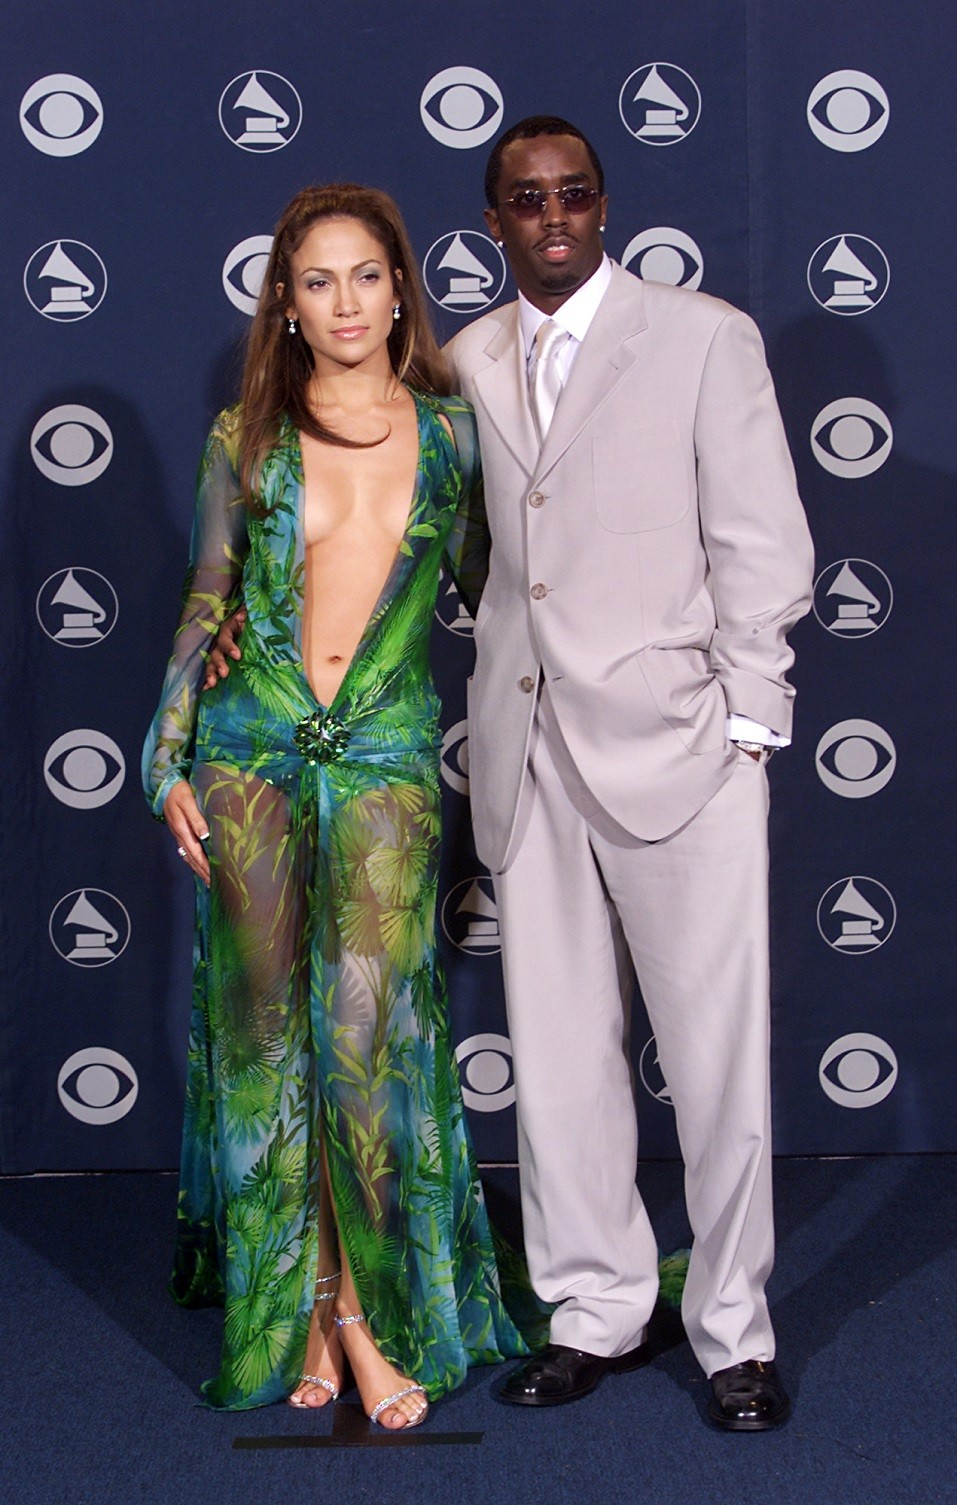 Jennifer Lopez and Sean 'Puffy' Combs at the 2000 Grammy Awards